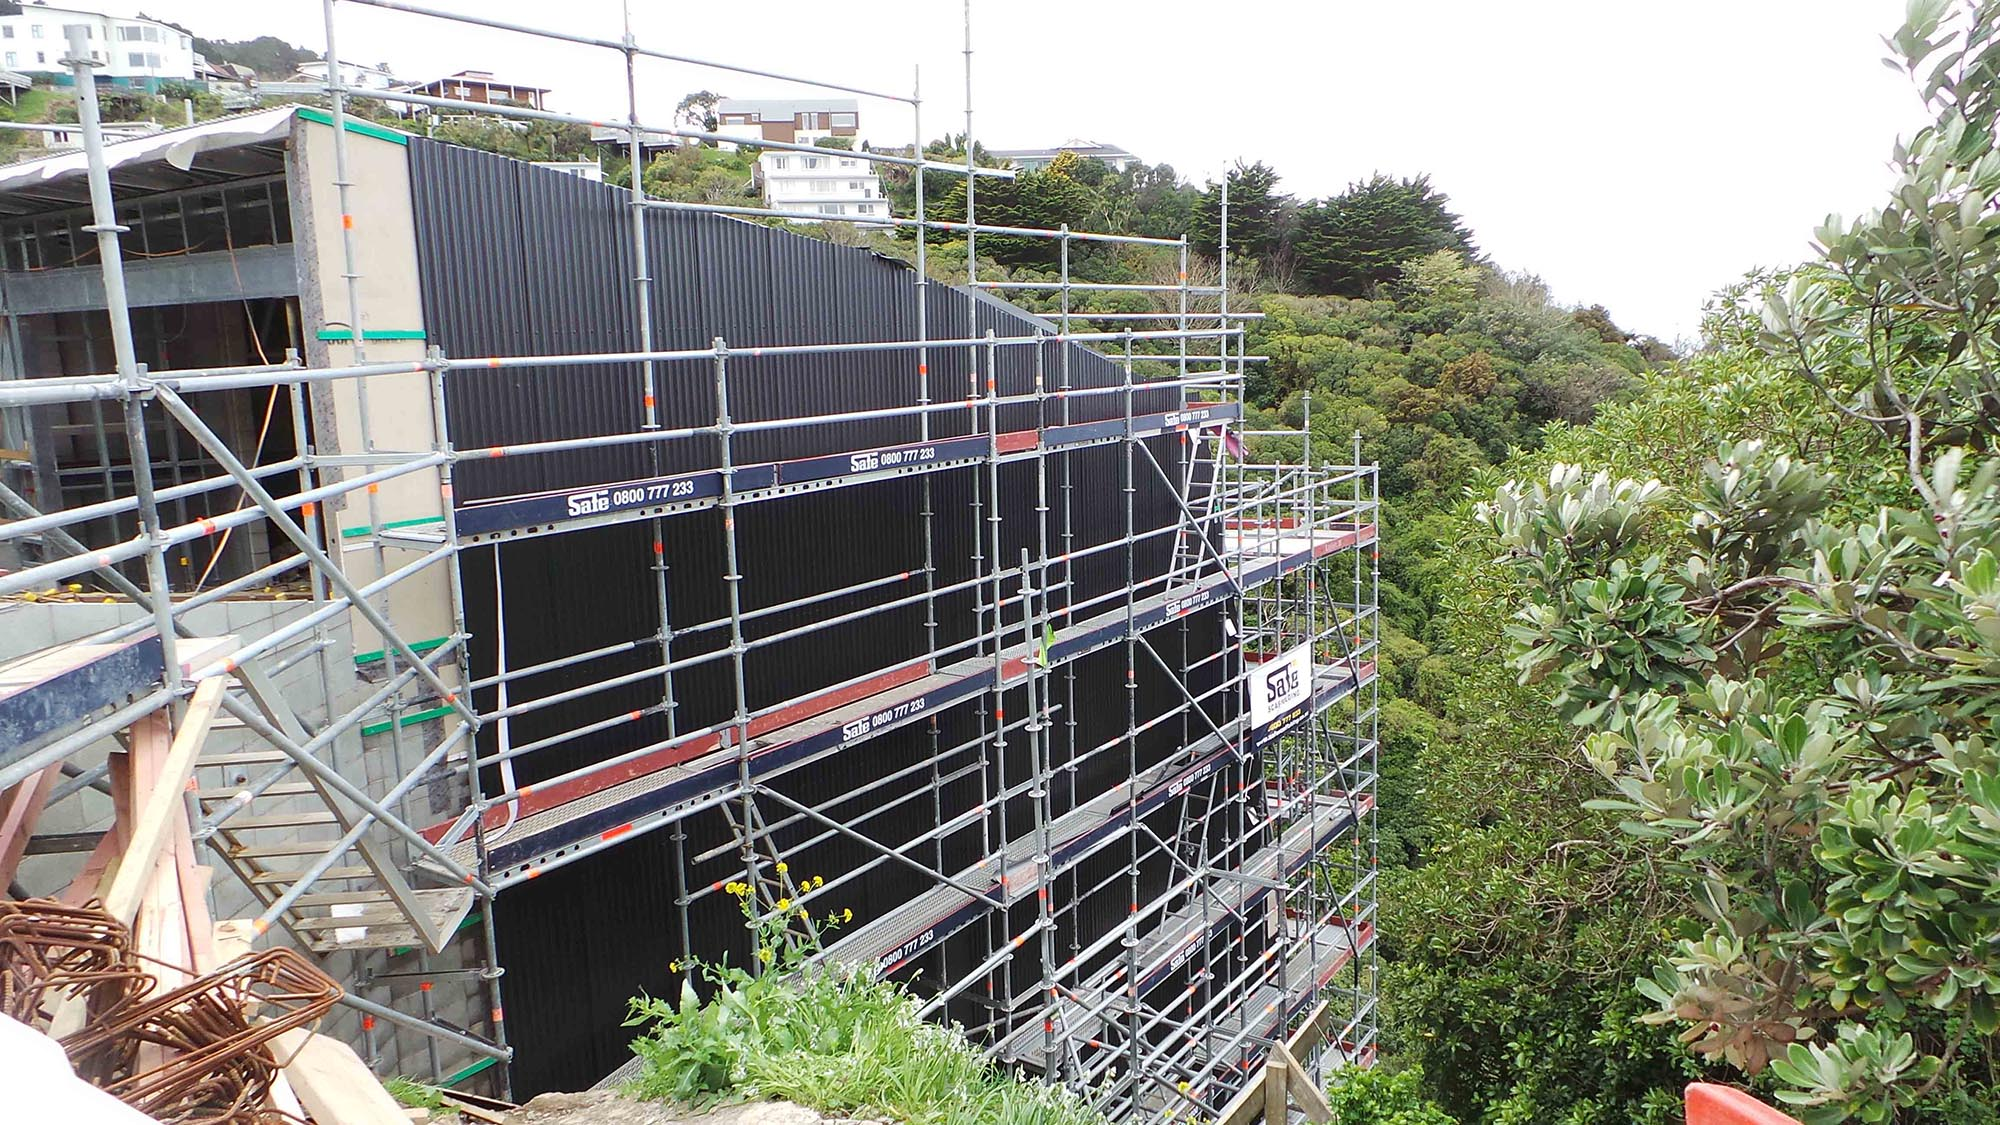 Safe Scaffolding erected Layher Scaffolding on this very steep section